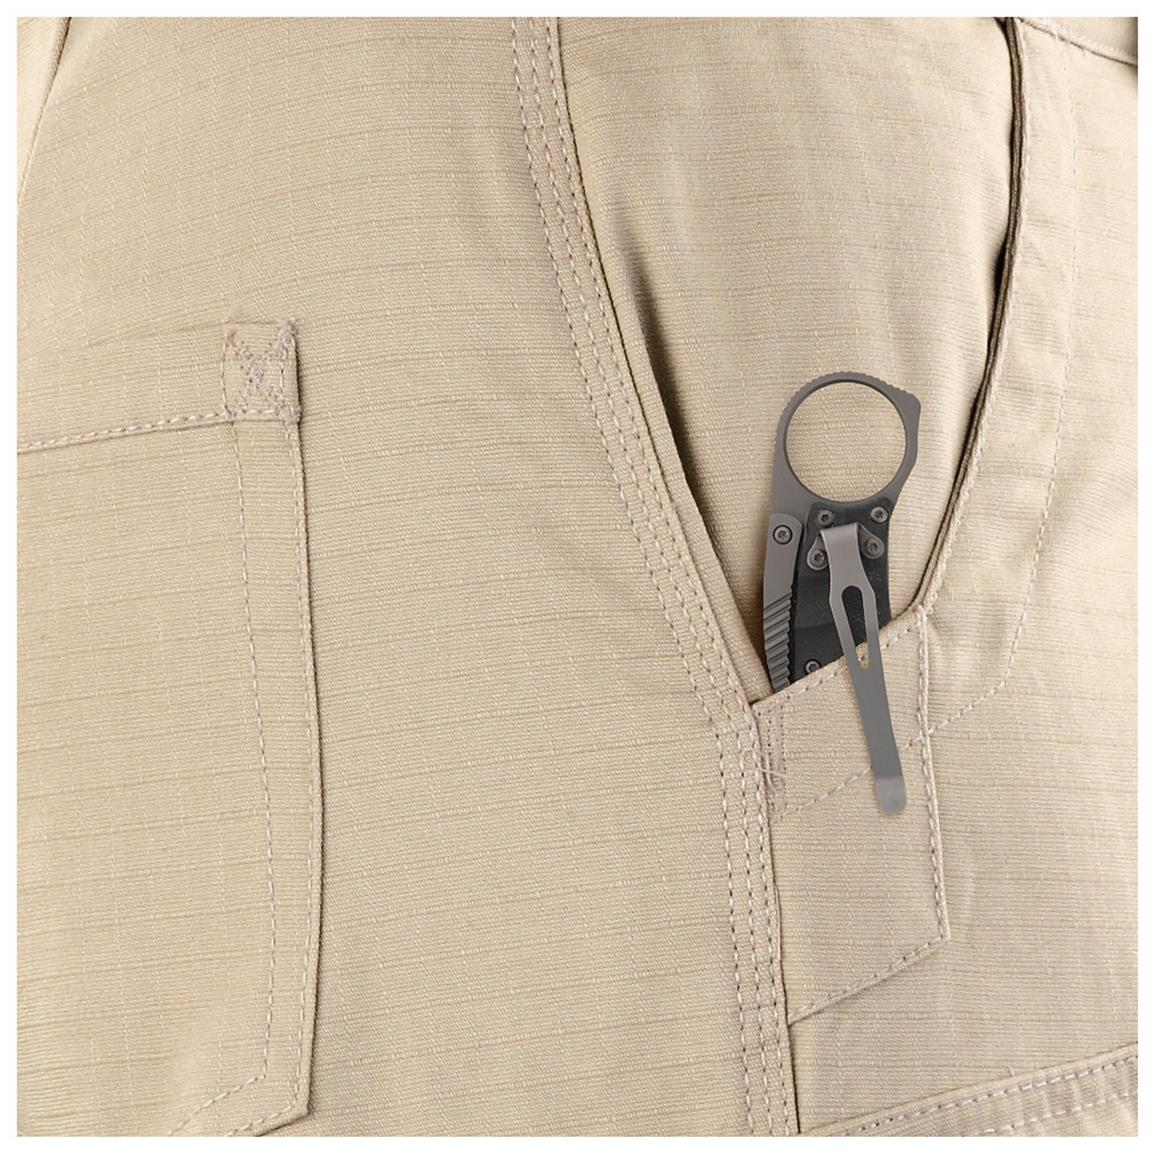 2 easy-access front slash pockets for your pocket knife